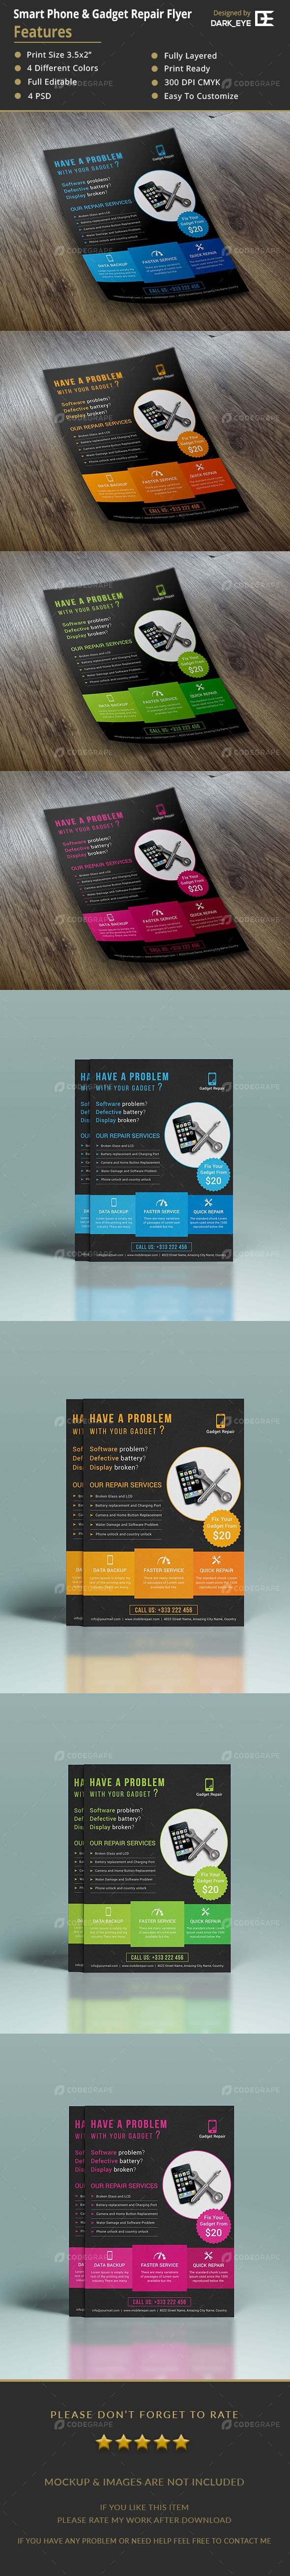 Smartphone & Gadget Repair Flyer